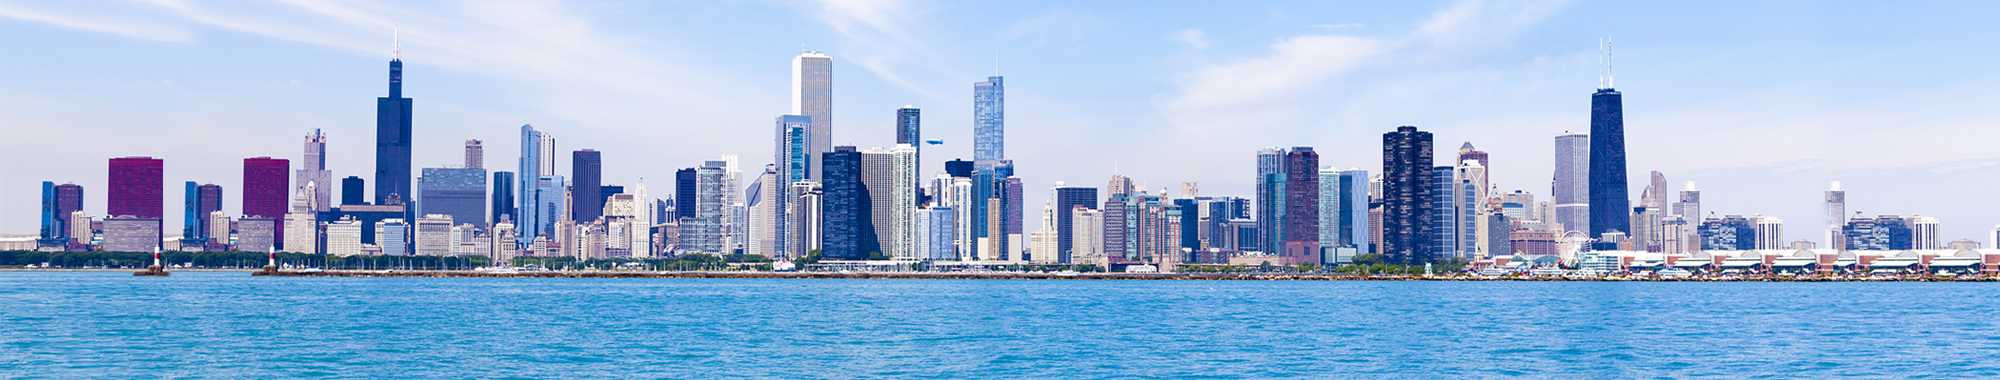 dexterMT-header-skyline-Chicago